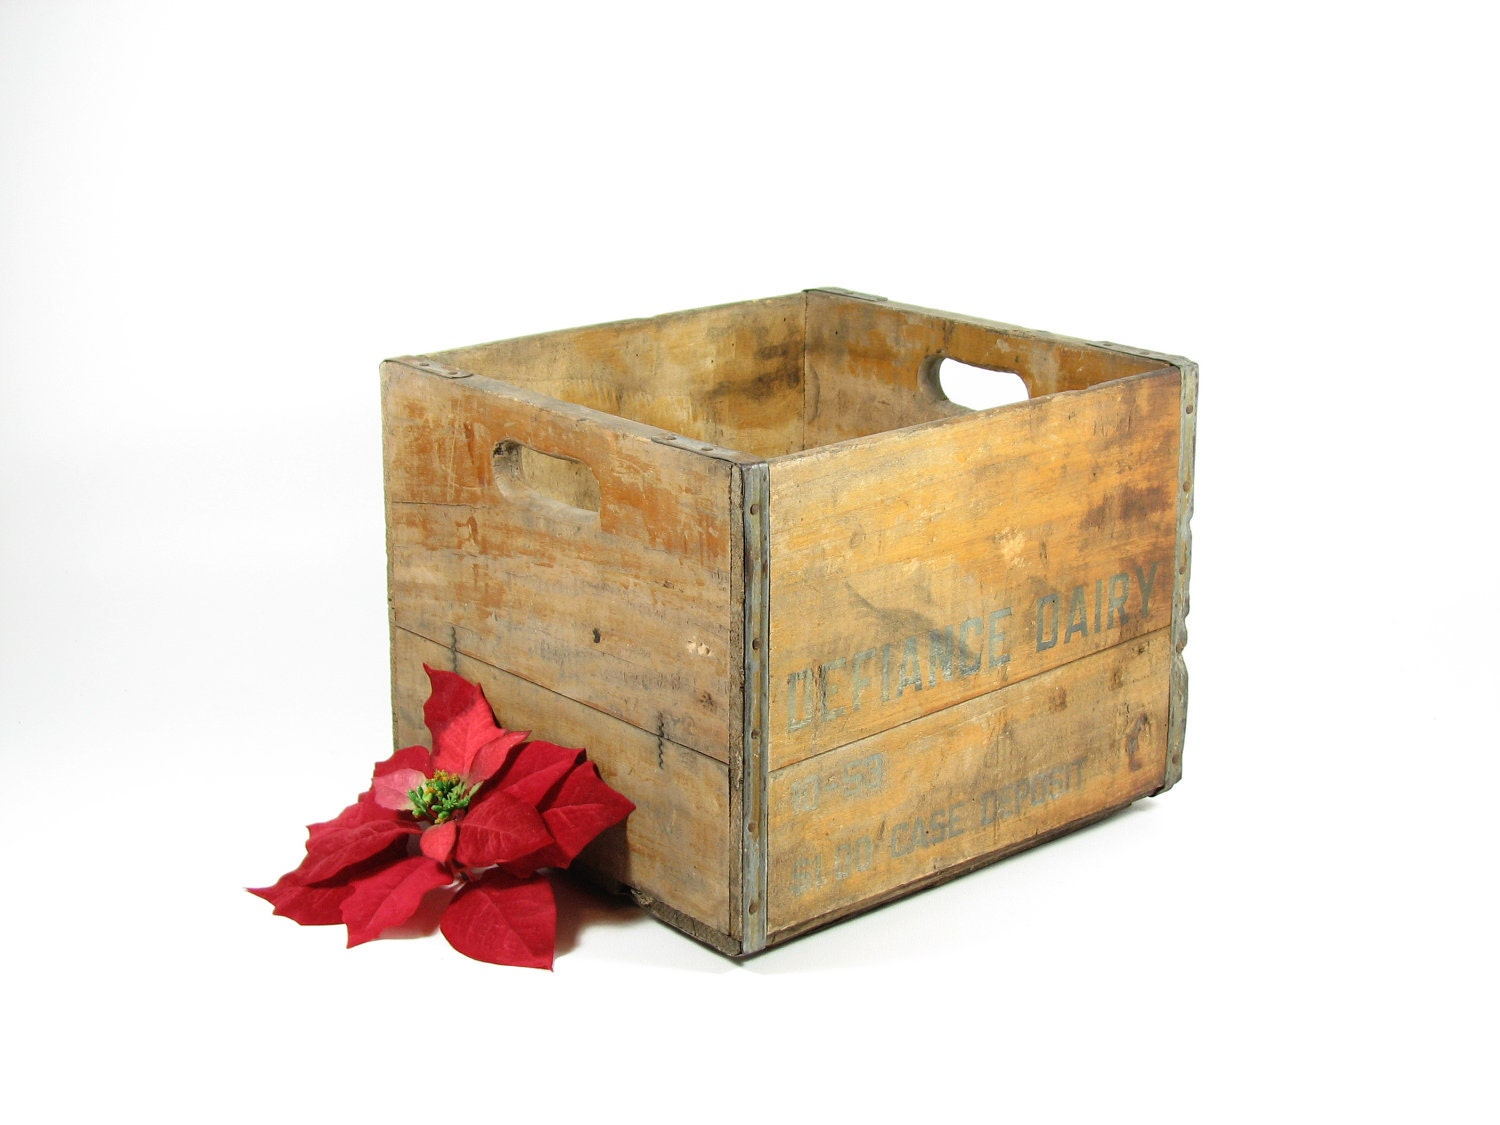 Vintage wood dairy crate wooden box defiance dairy ohio for Old wooden crates